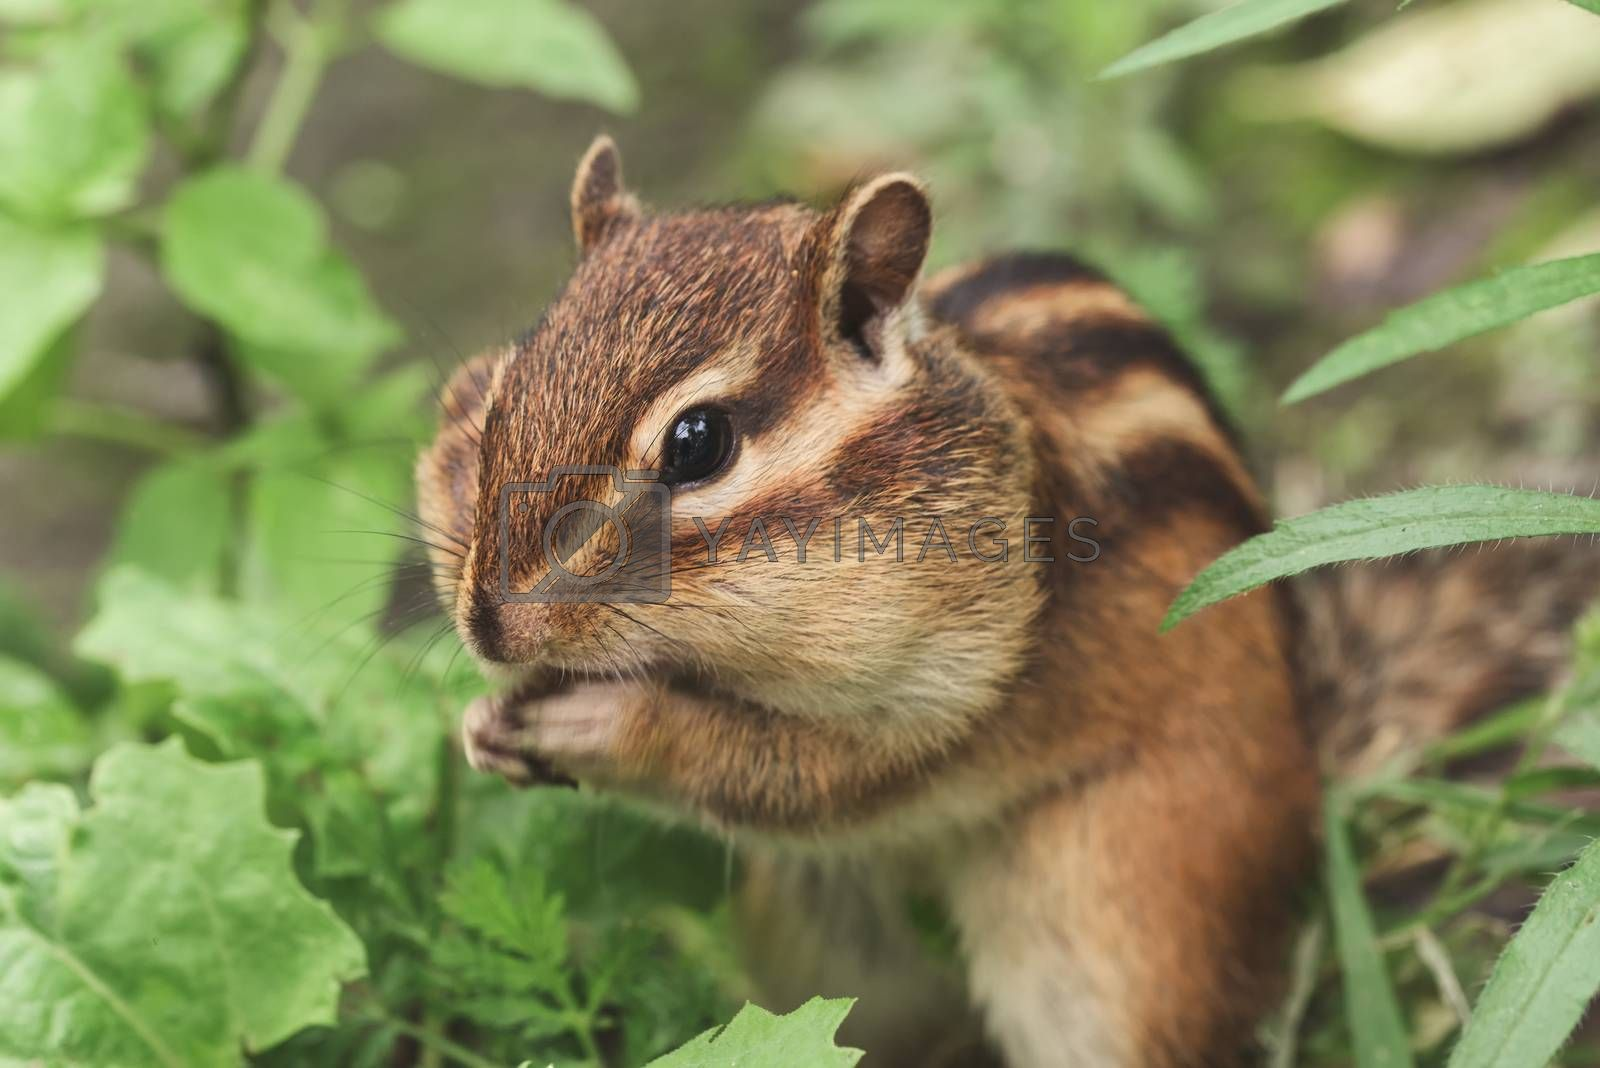 Chipmunk in nature. Chipmunk is stuffing food into mouth